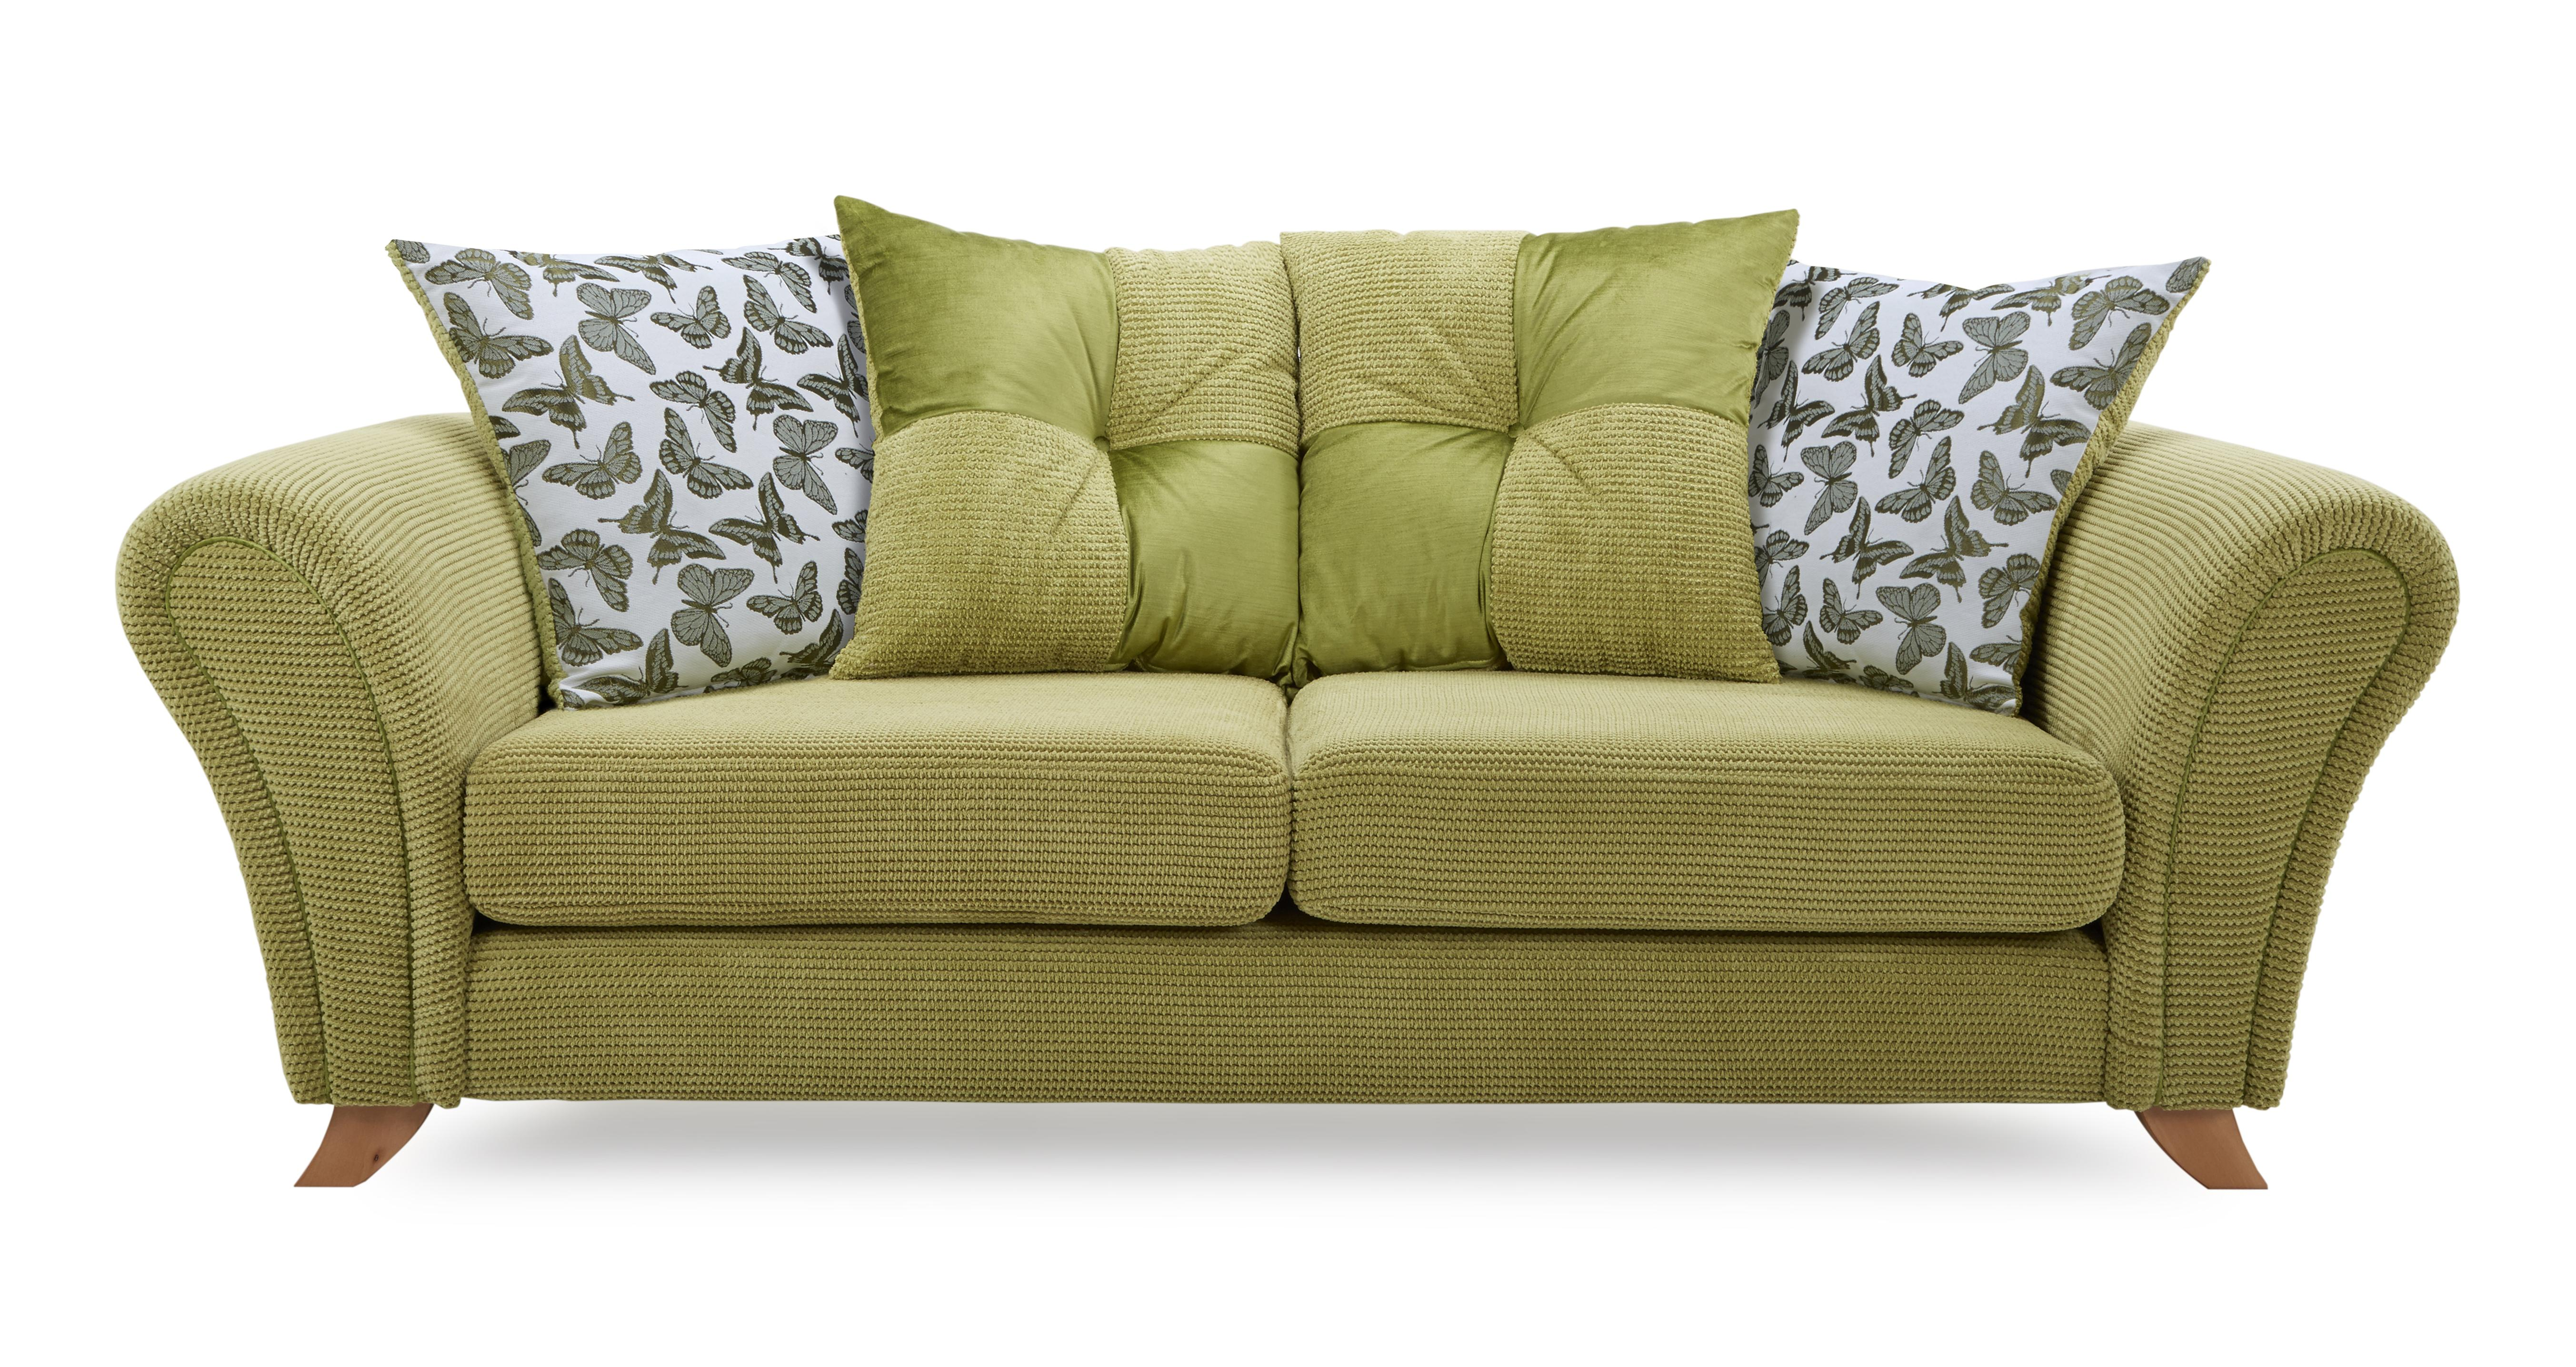 sofa connection memphis greenpoint dfs green brokeasshome